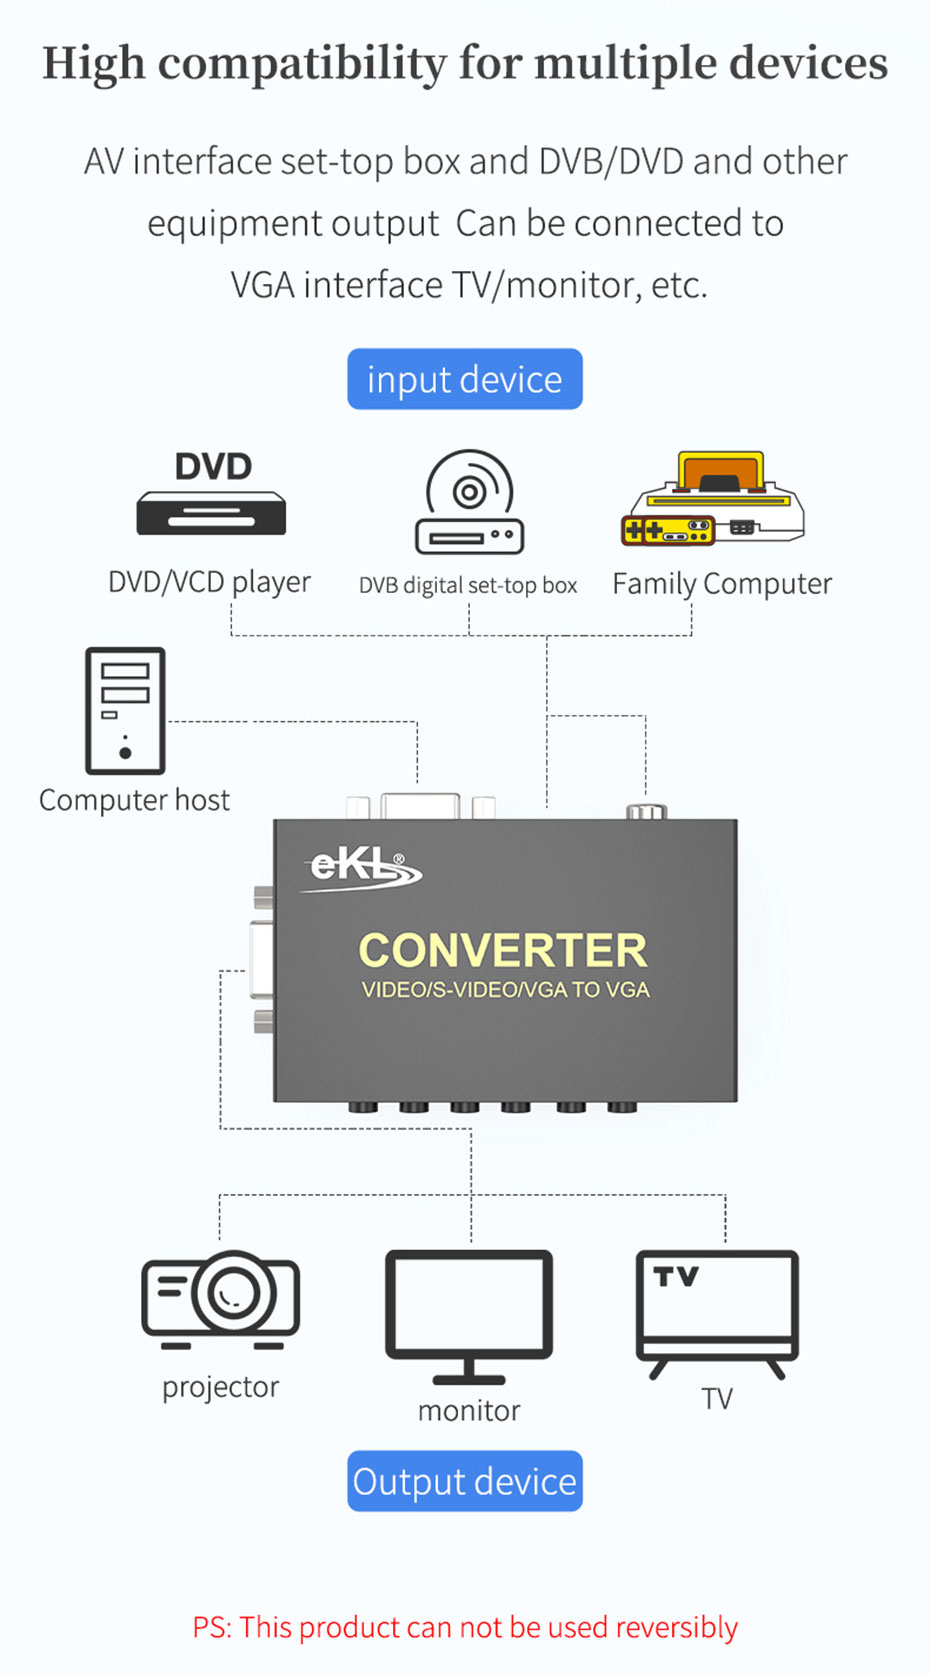 S-Video to VGA converter 1802 is compatible with multiple devices